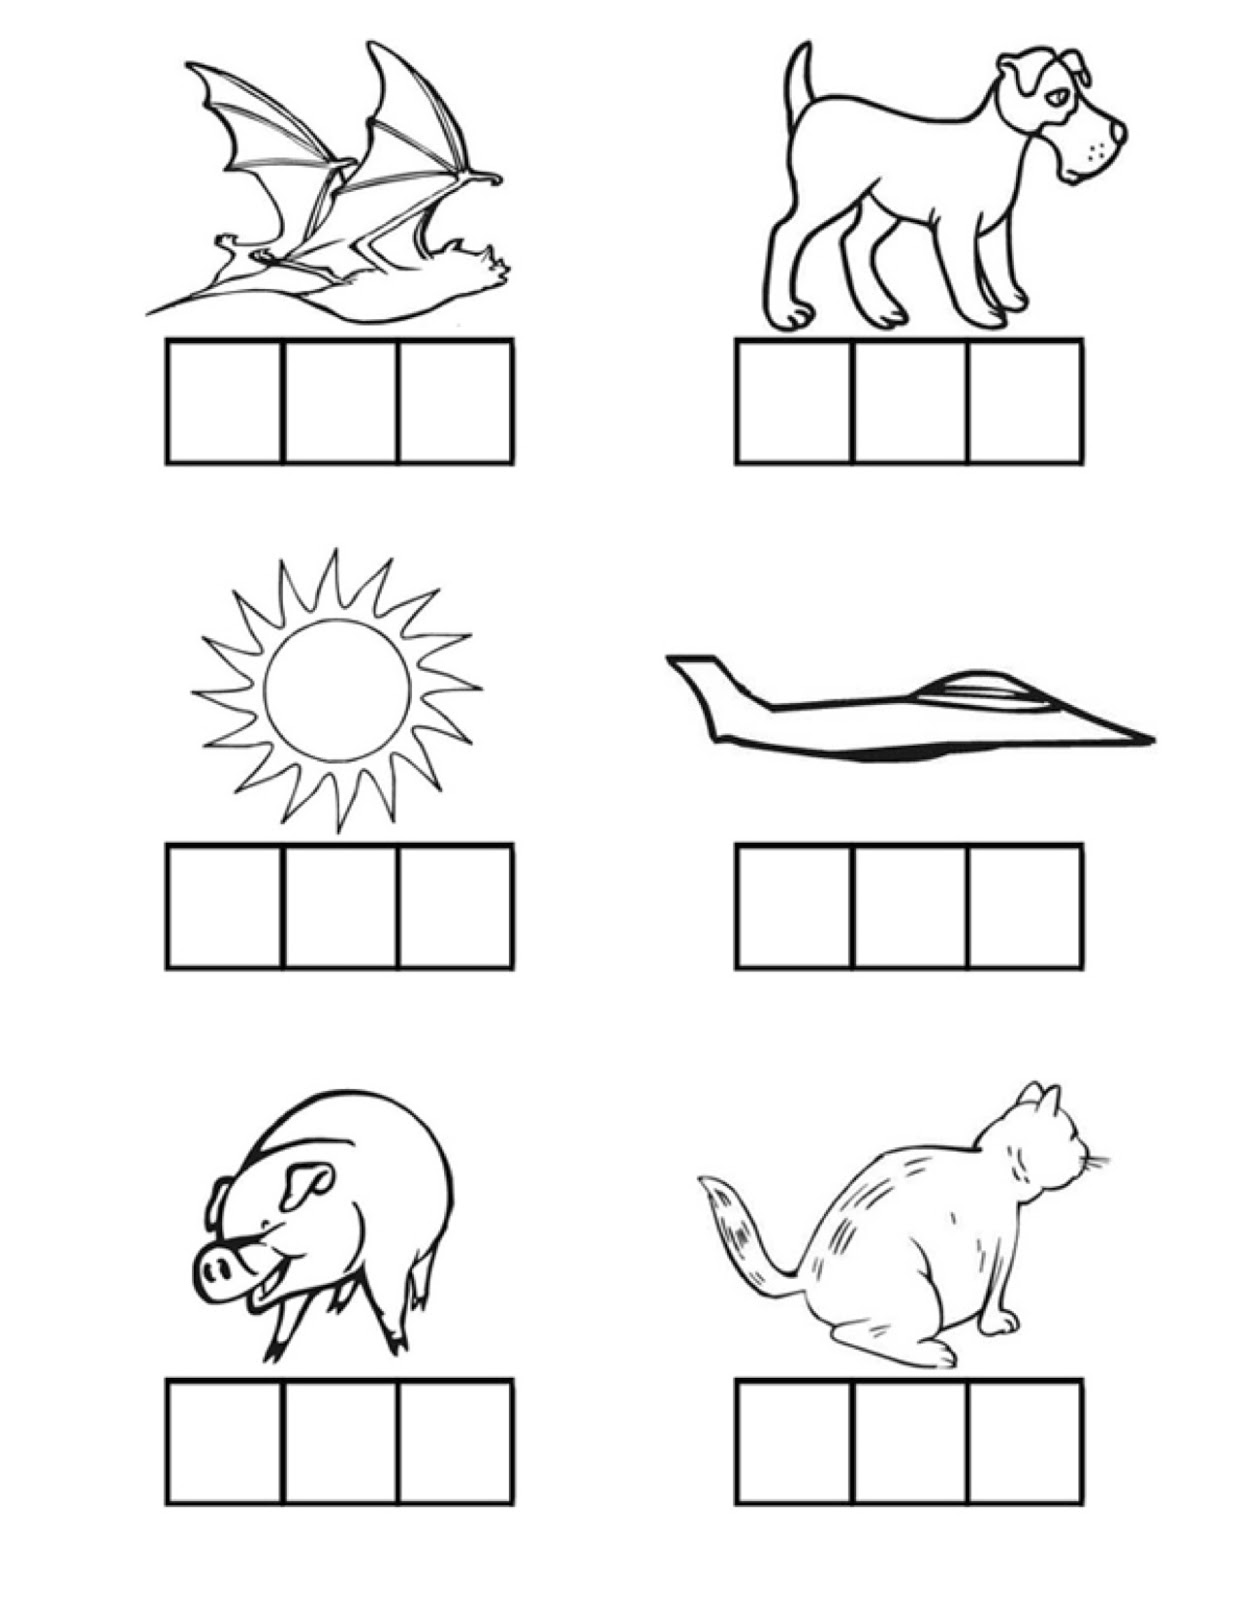 ... Kindergarten Phonics Printable Worksheet. on kindergarten blending